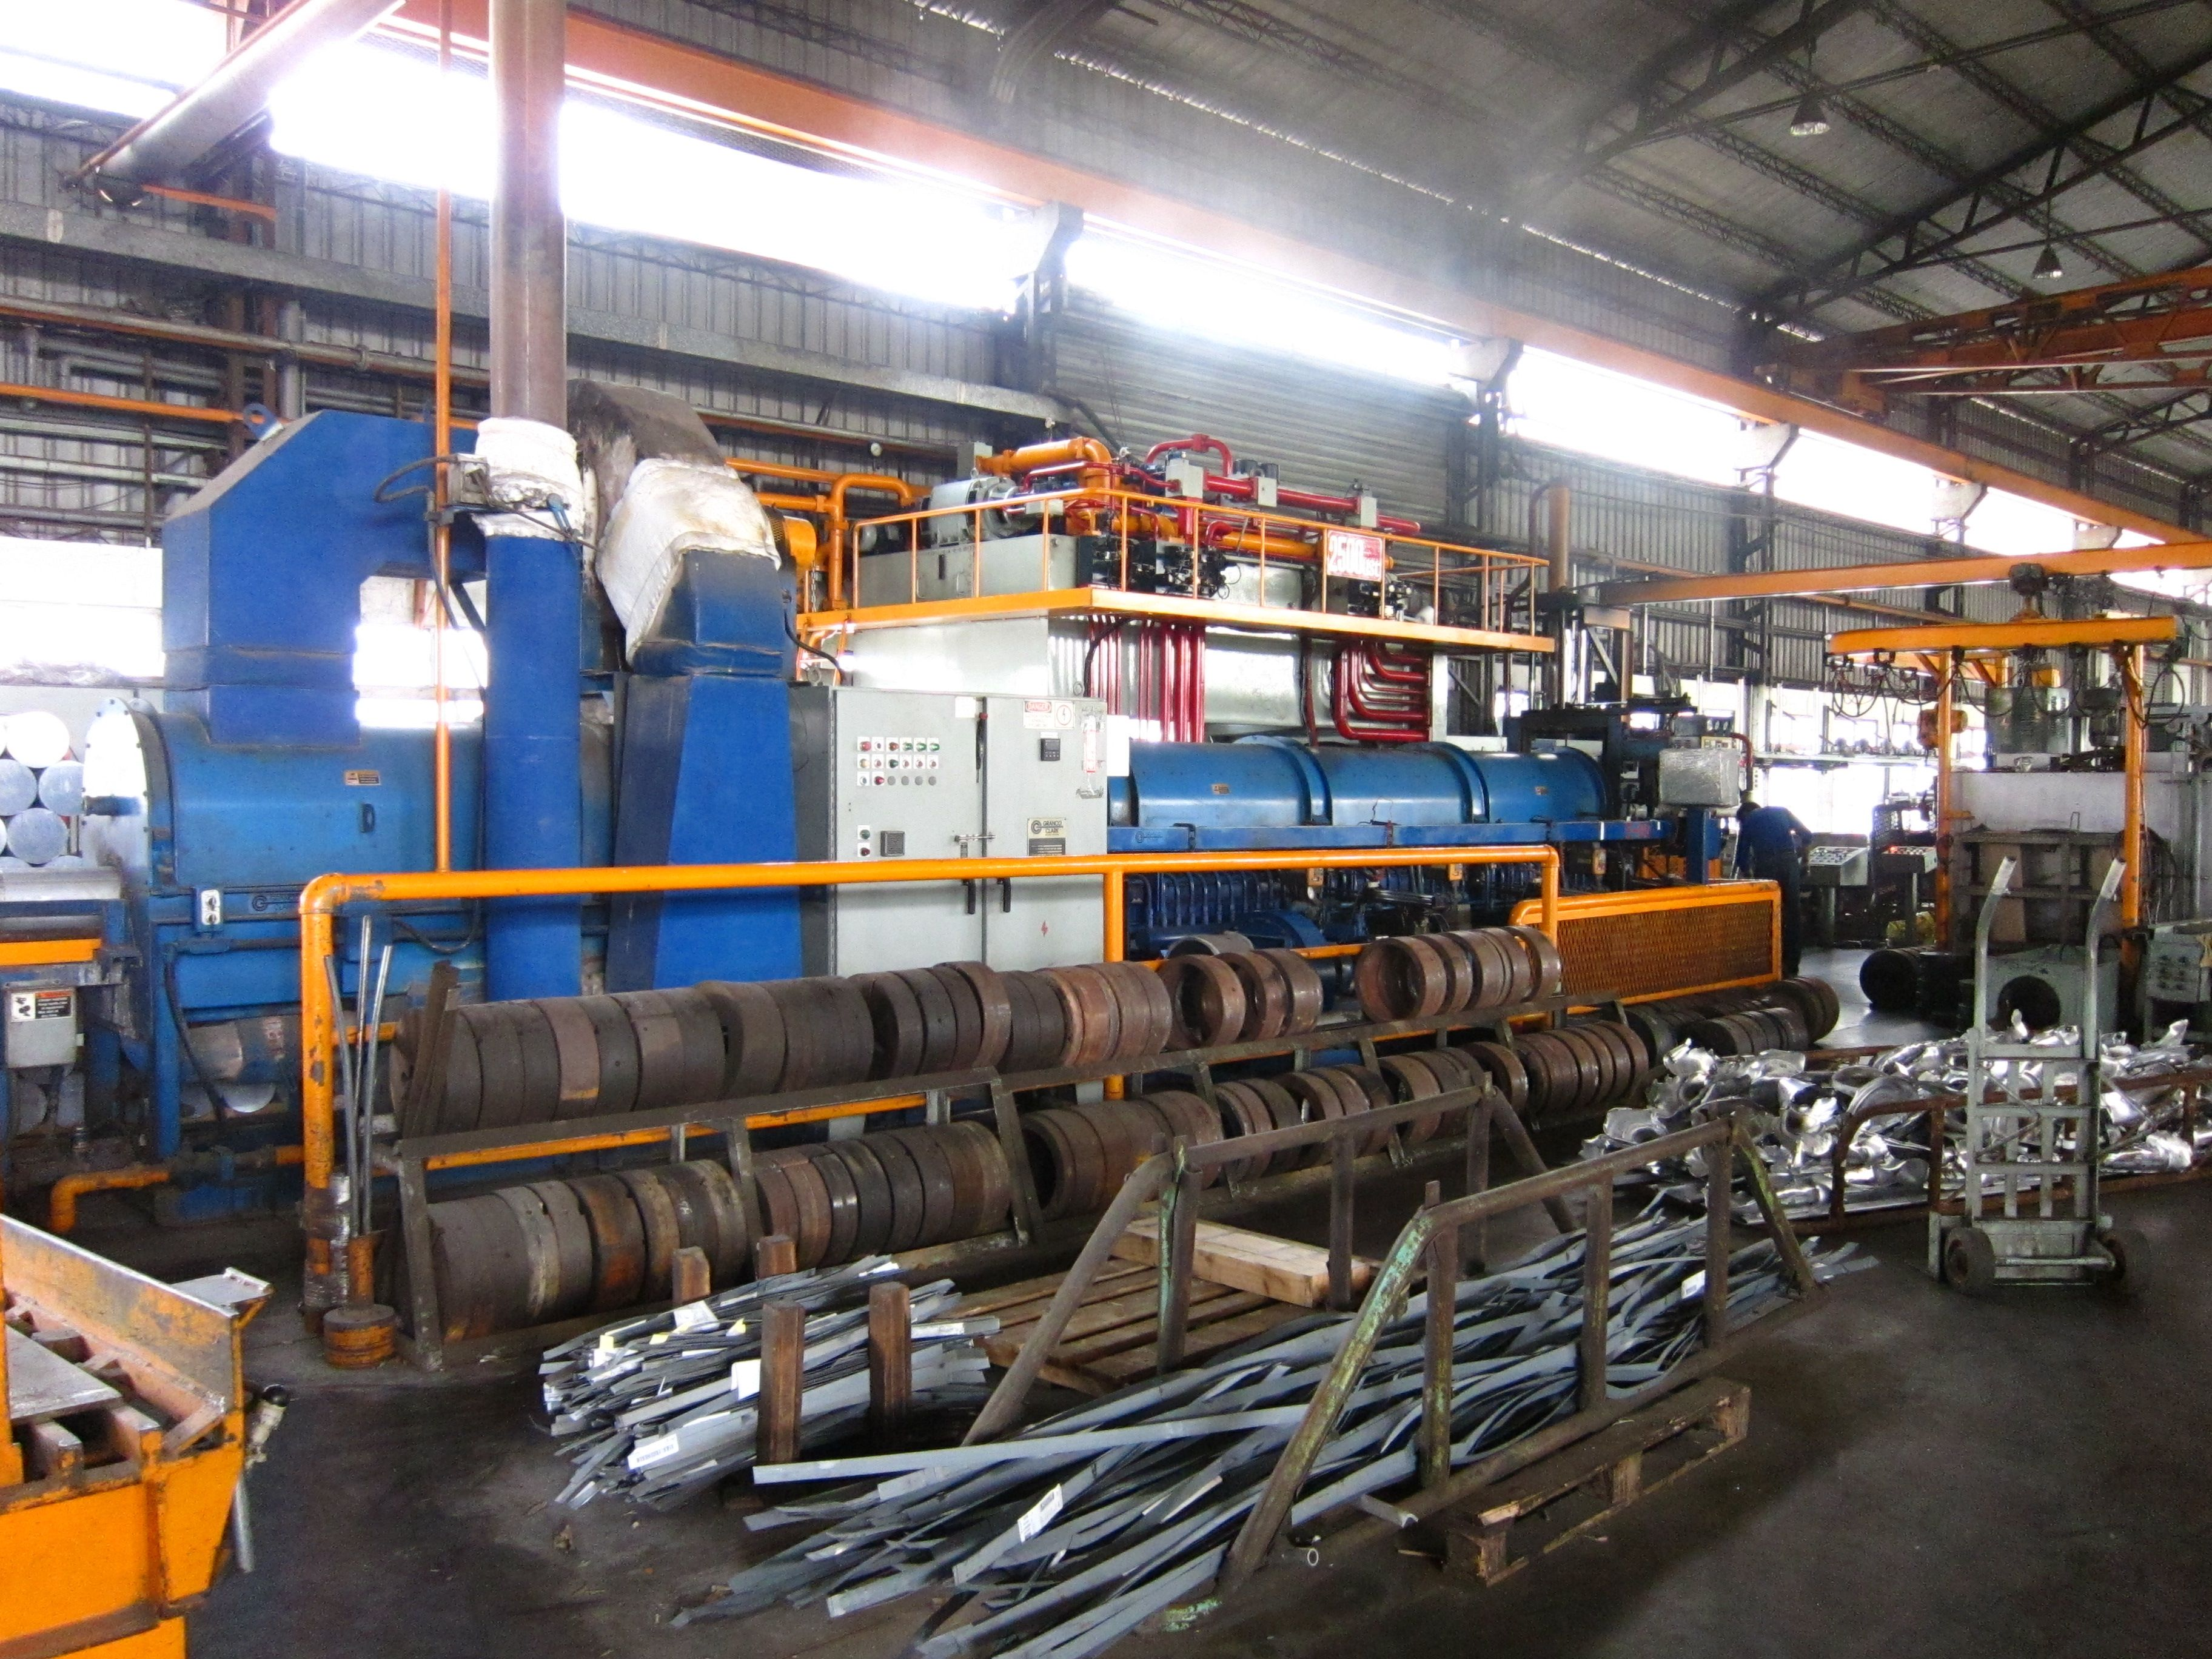 Al_extrusion_machine_with_dies